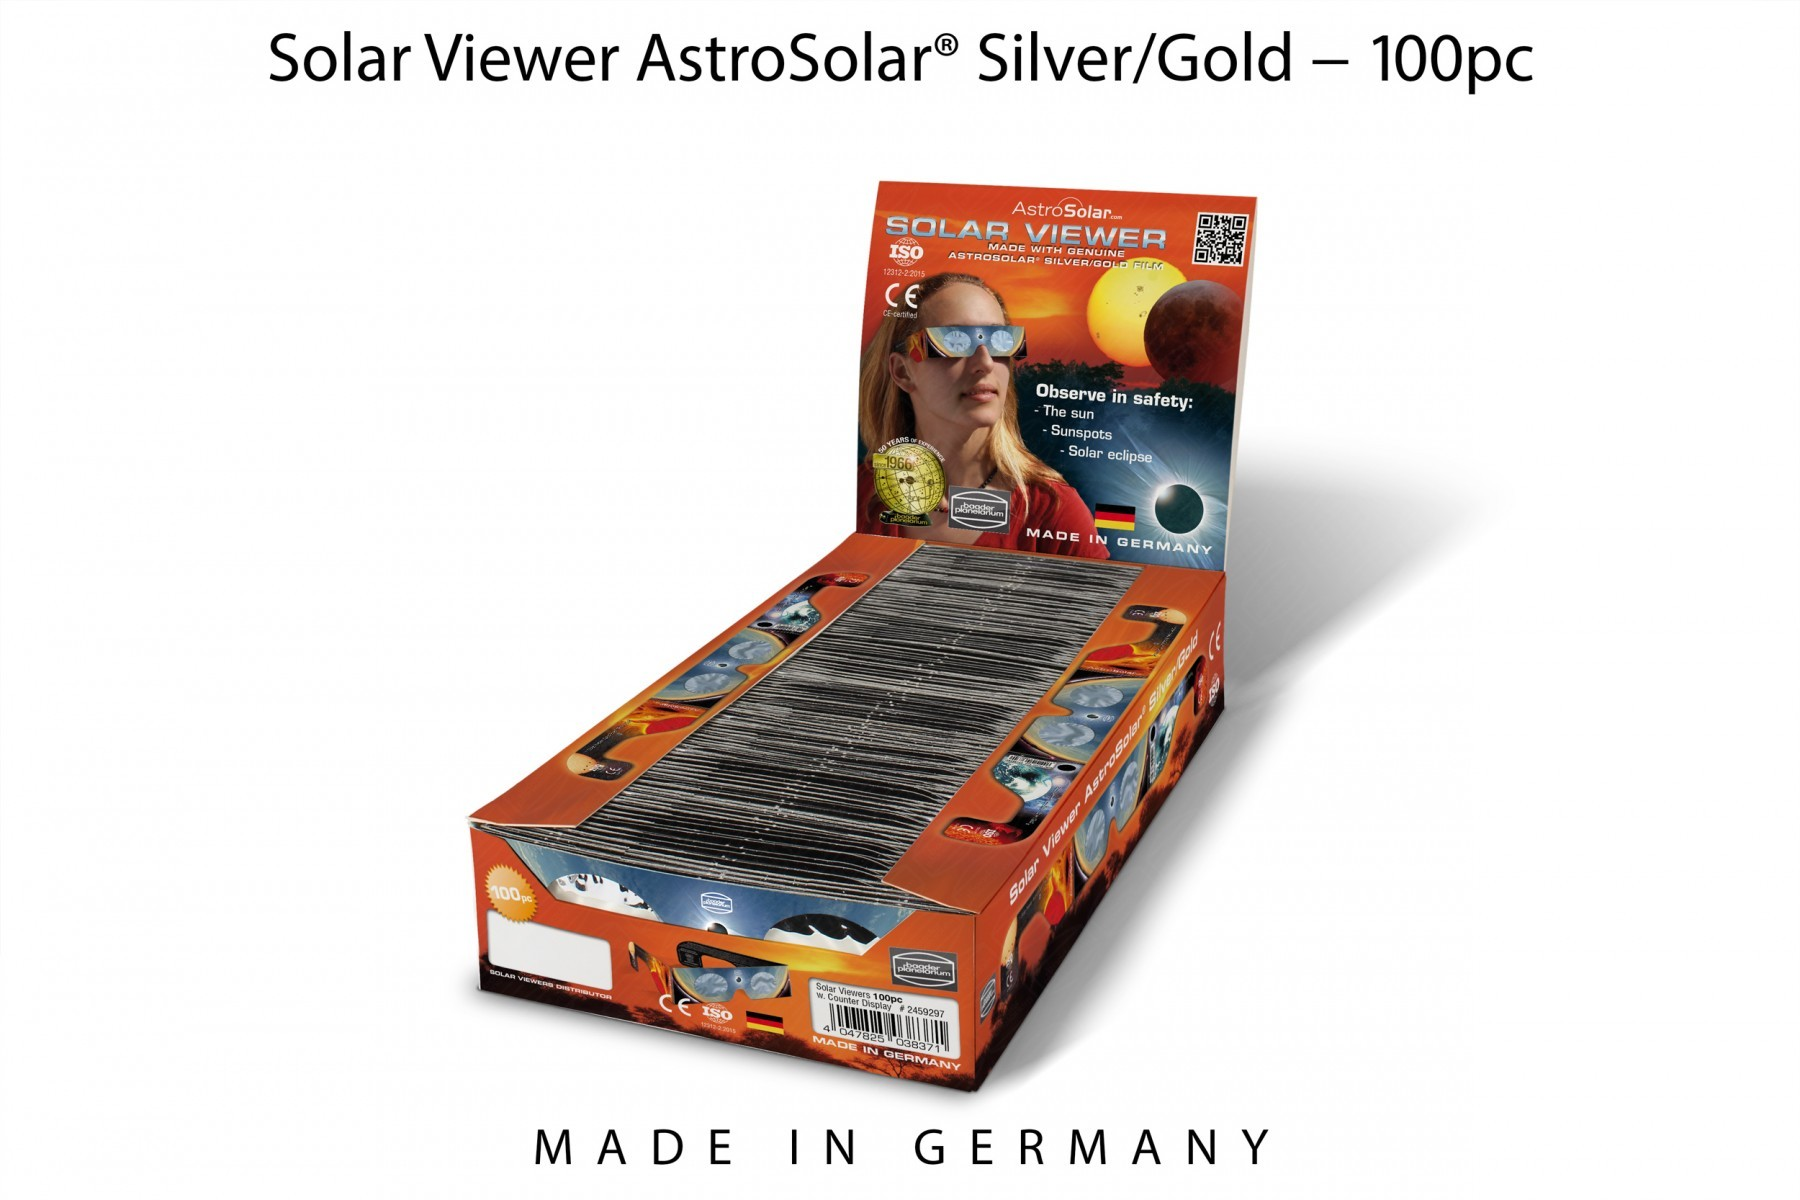 Kit 100 pezzi Occhialini Solar Viewer AstroSolar Silver/Gold - Set with counter display